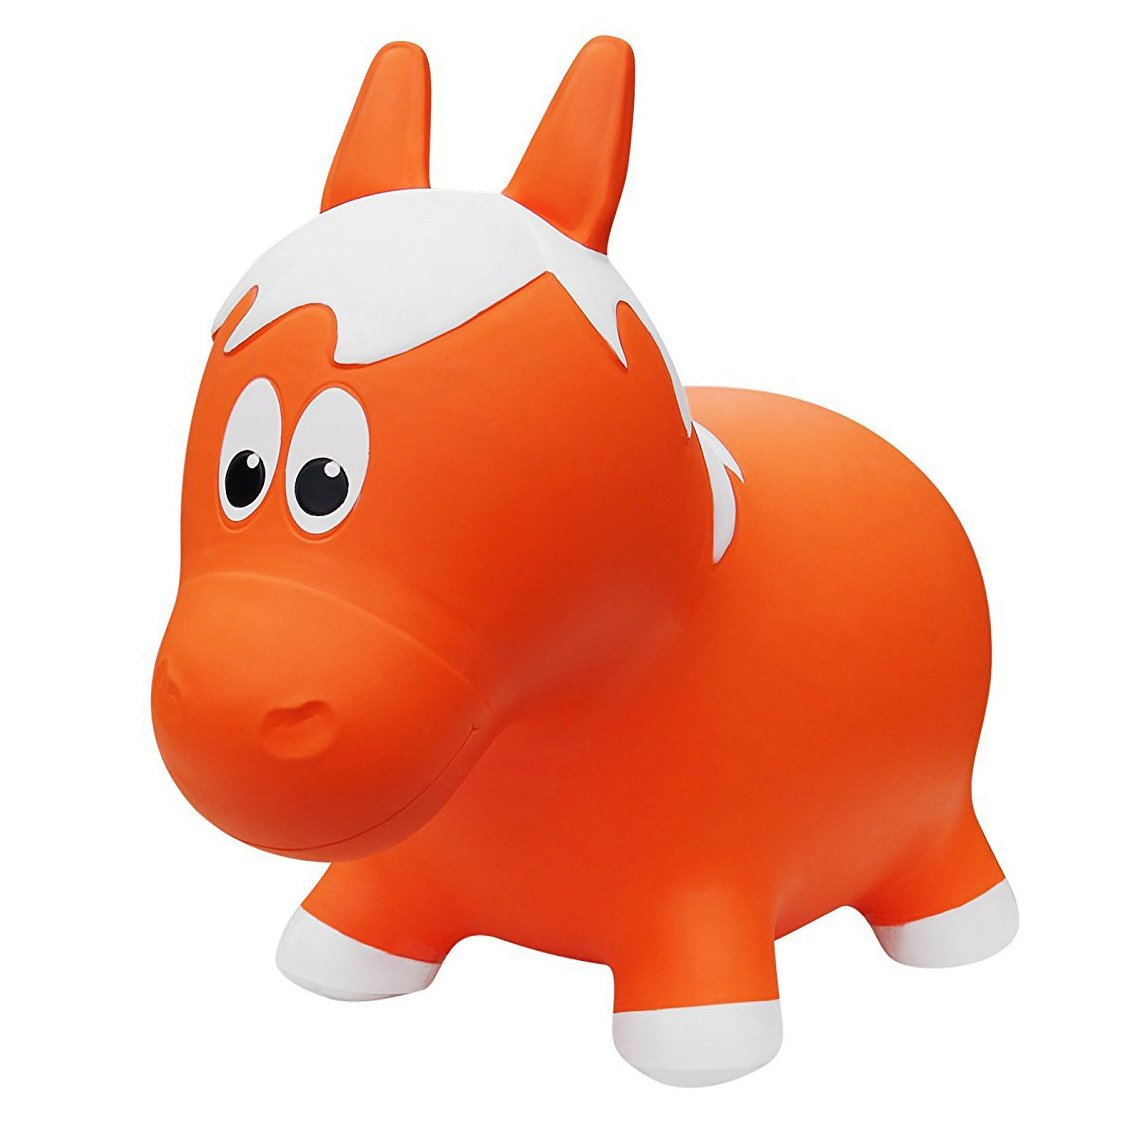 Farm Hoppers - Award Winning Inflatable Bouncing Orange Horse with Pump FHA1204